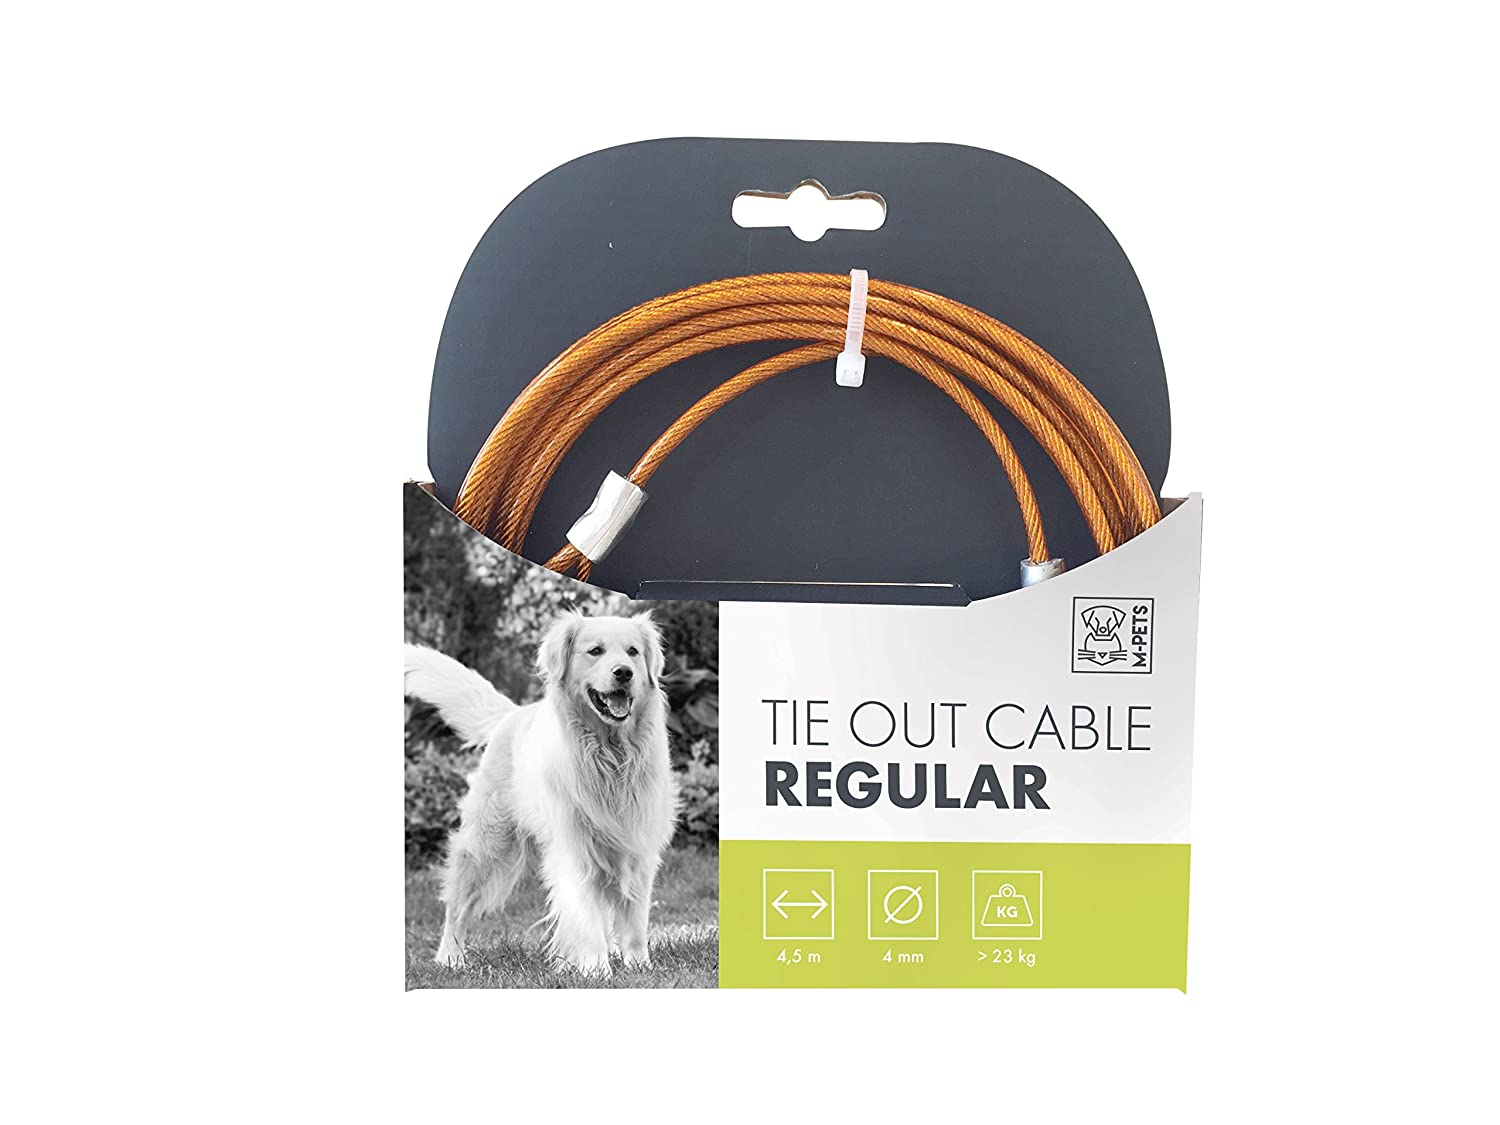 MPETS 10800599 Câble d'attache Regular pour Chien - Lot de 2